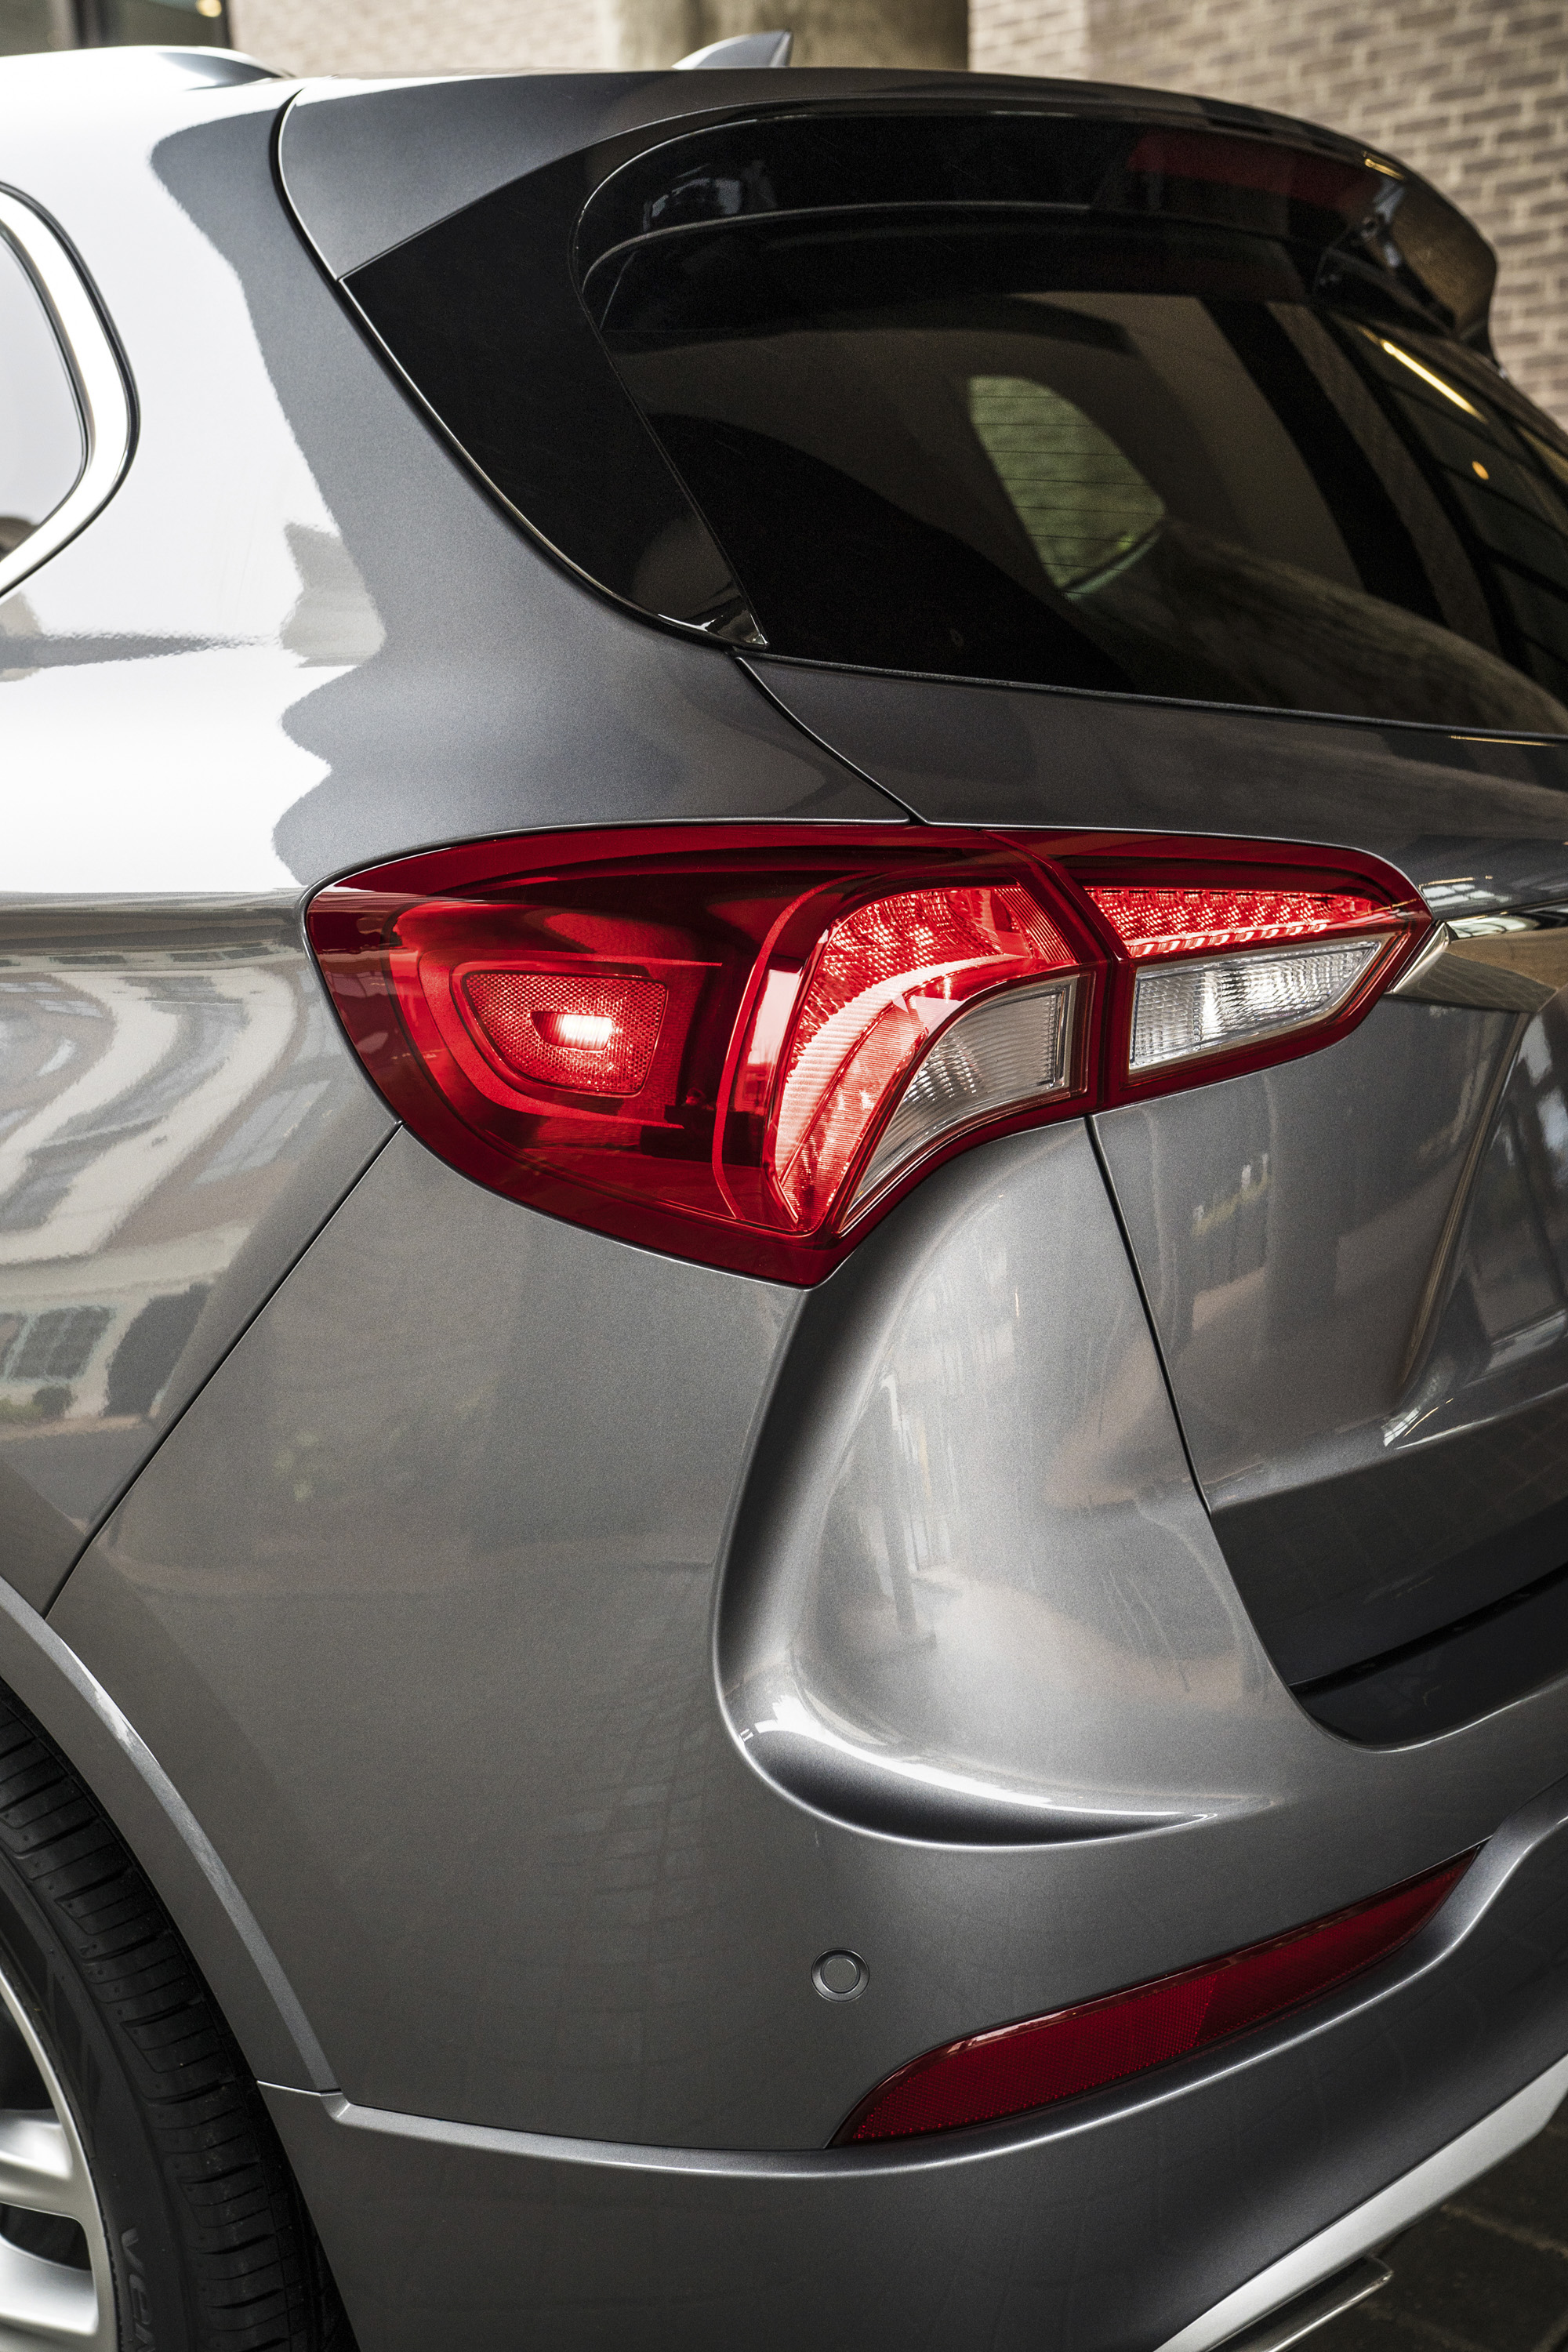 2019 Buick Envision Tail Light Wallpapers (14)